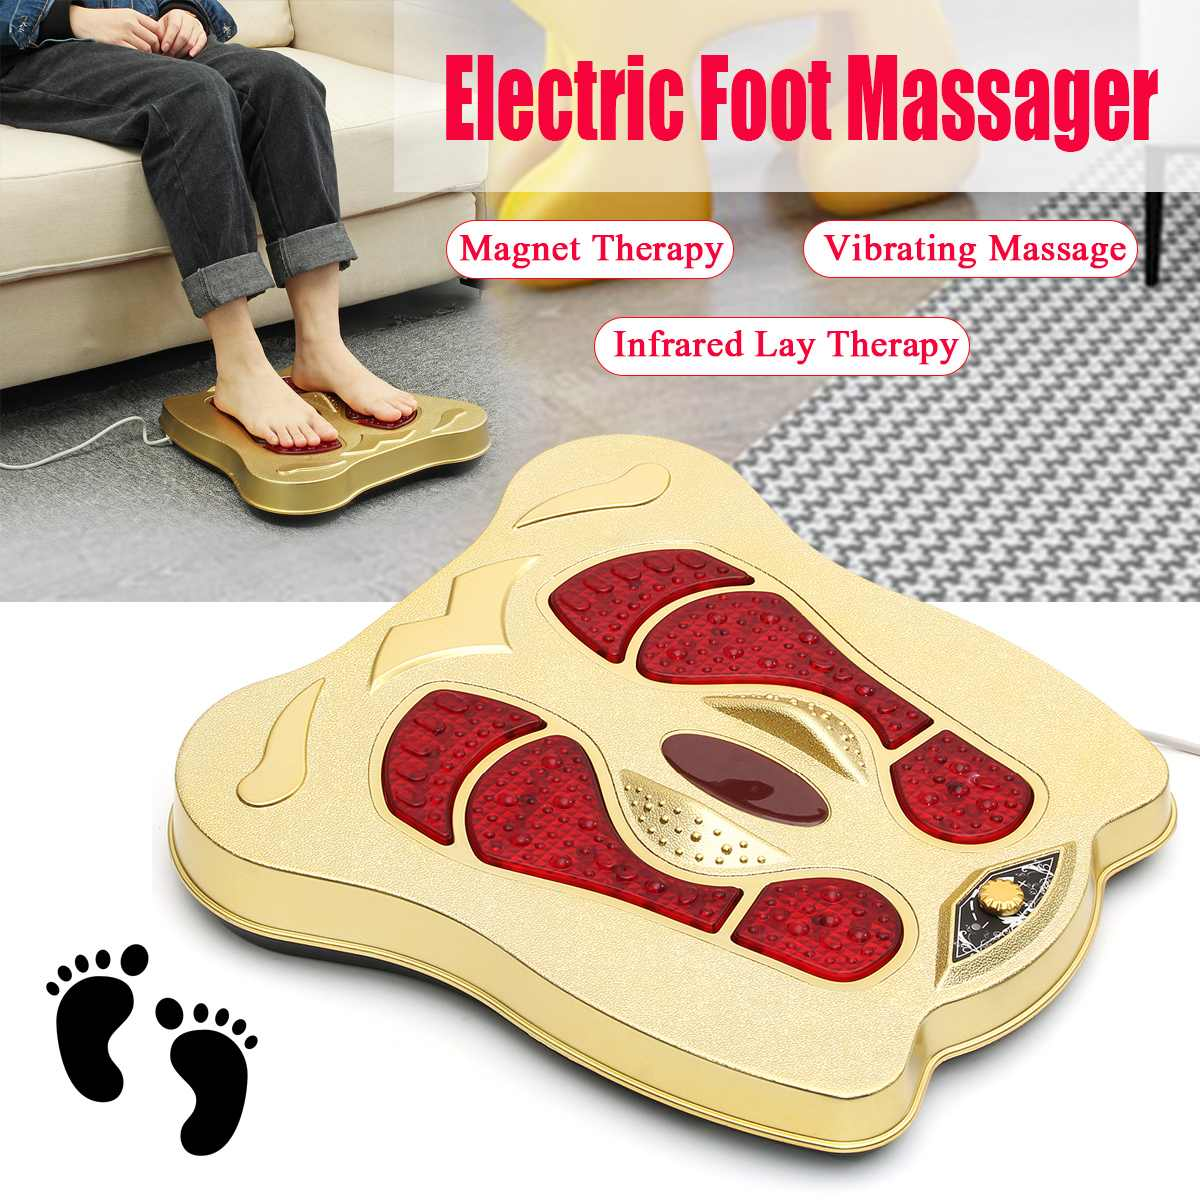 Vibration In Foot >> Us 32 37 36 Off Home Foot Massager 220v Shiatsu Circulation Vibration Blood Booster Infrared Electromagnetic Foot Massager Electric Machine Gift In